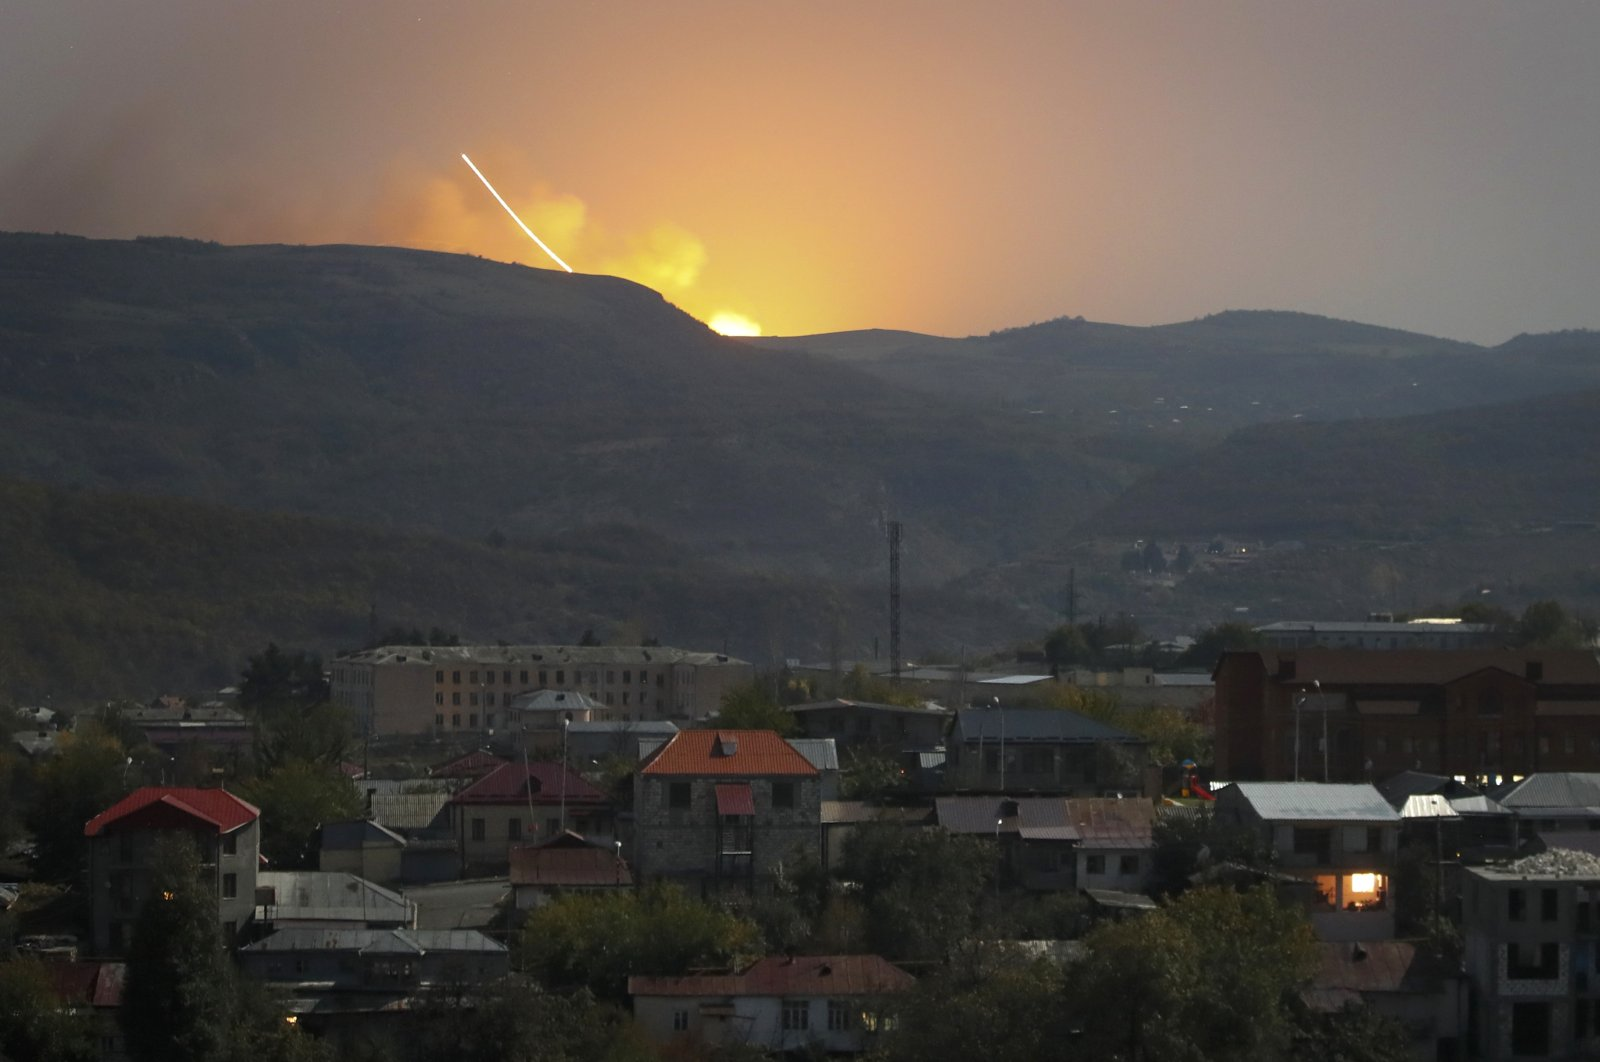 Explosions are seen behind the mountains during a military conflict outside Stepanakert (Khankendi) in the Armenian-occupied region of Nagorno-Karabakh, Oct. 30, 2020. (AP Photo)